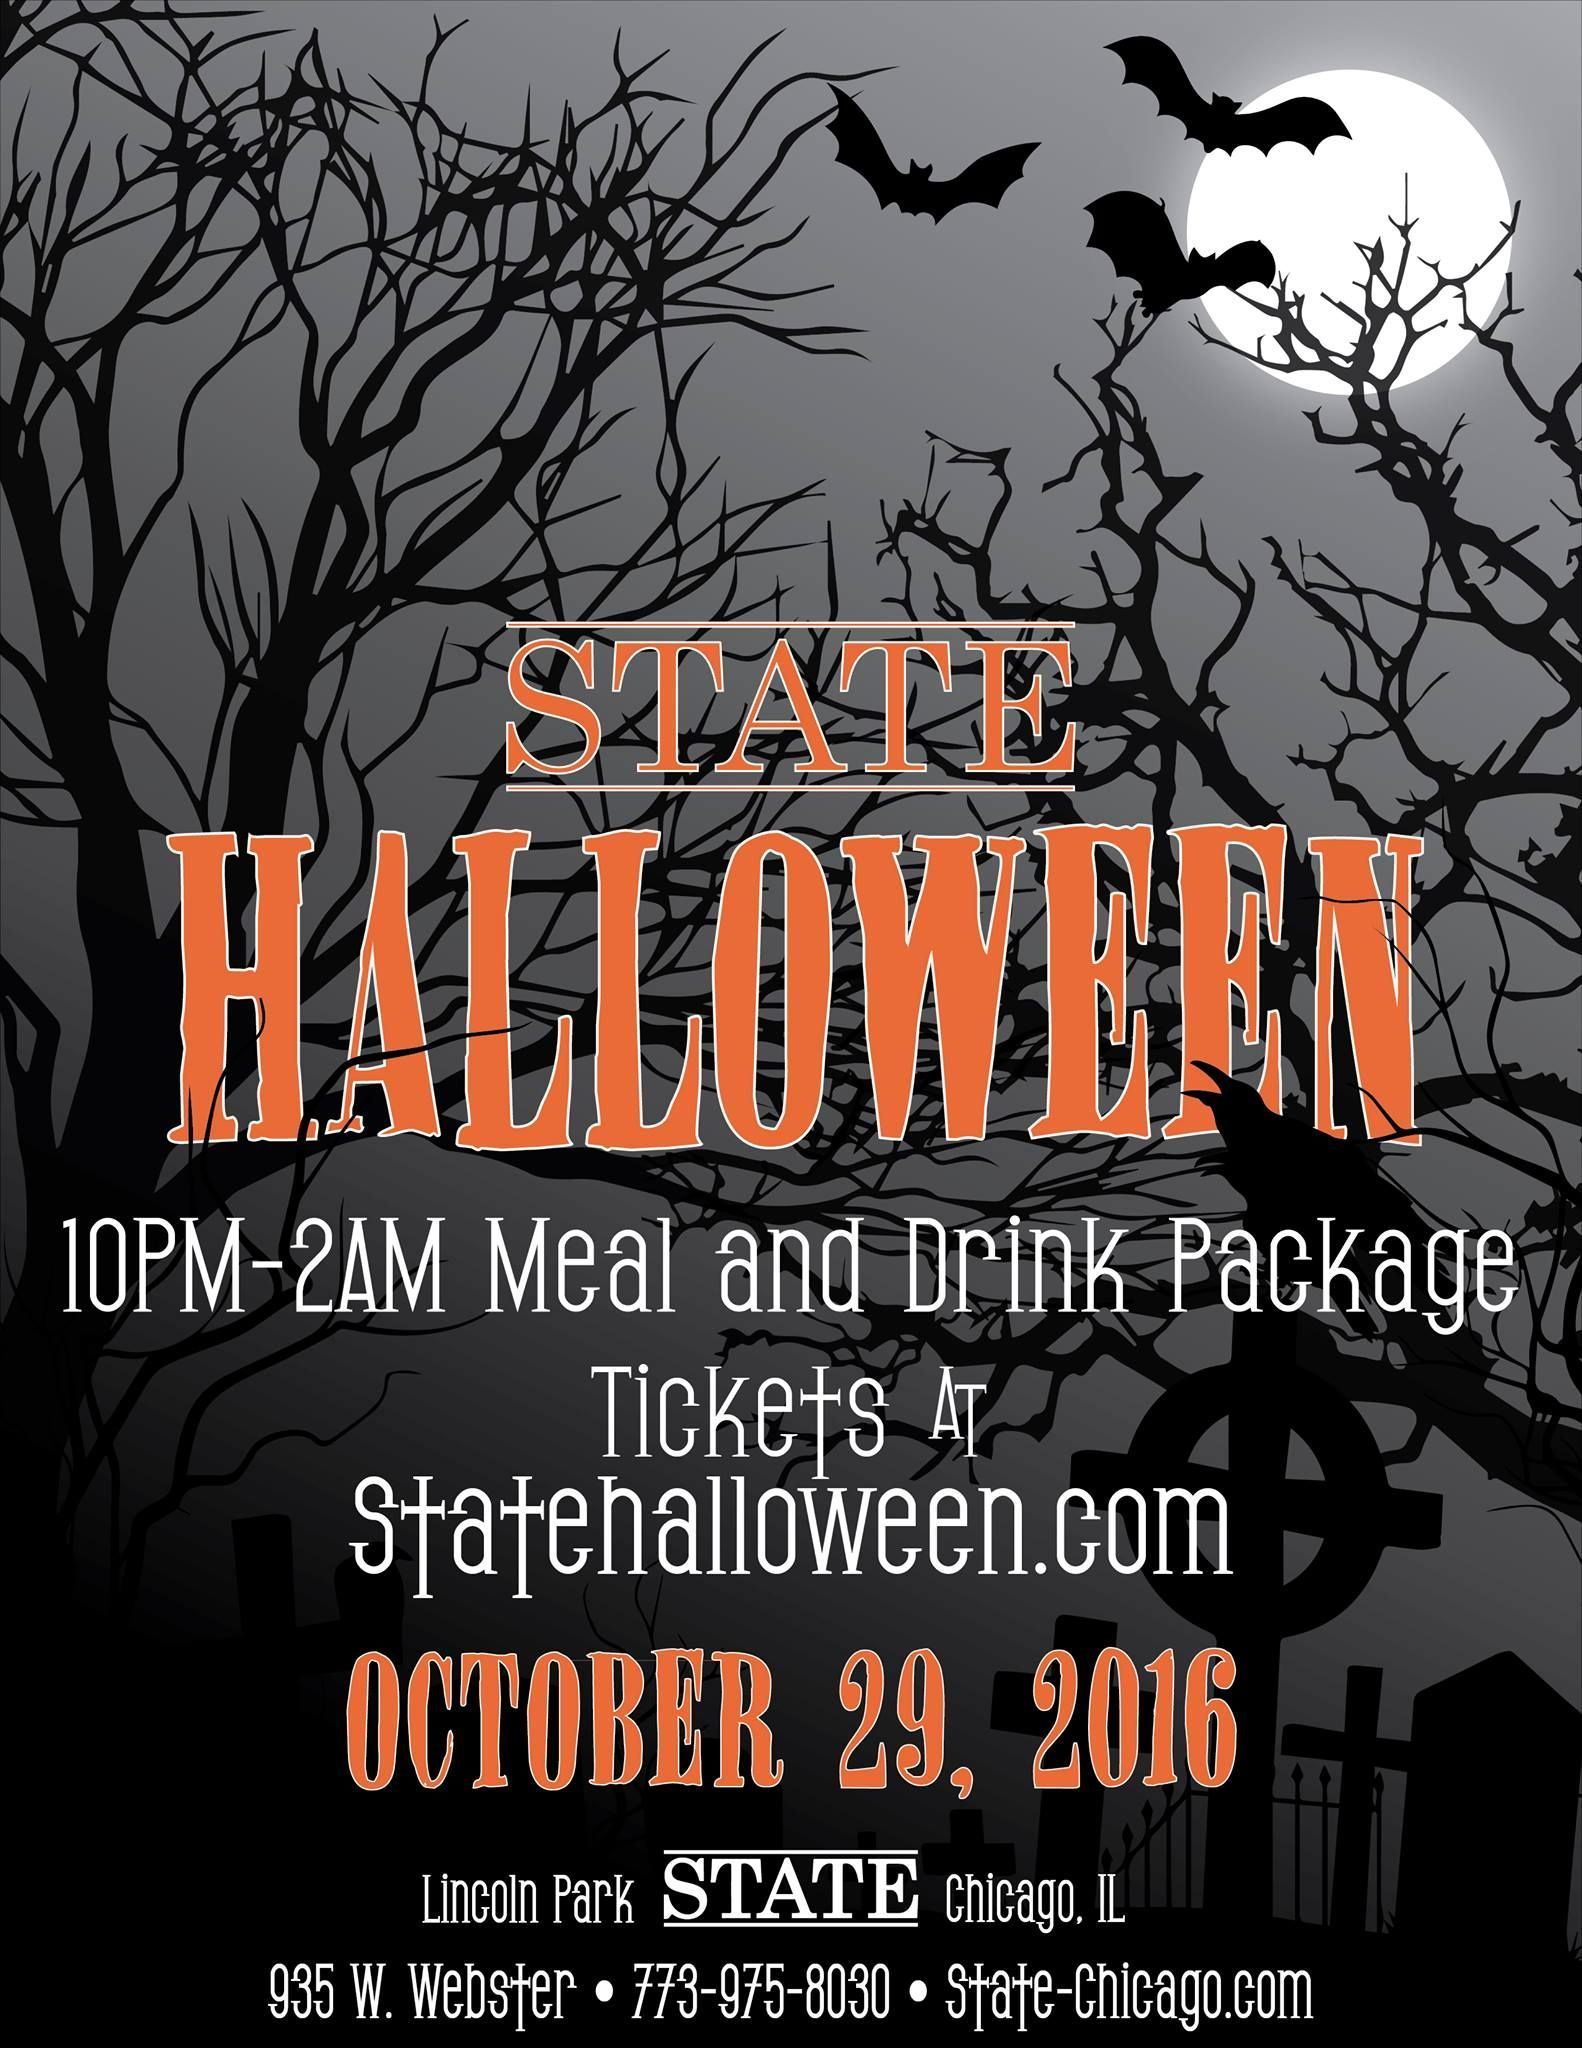 Halloween is less than two weeks away! Celebrate with us